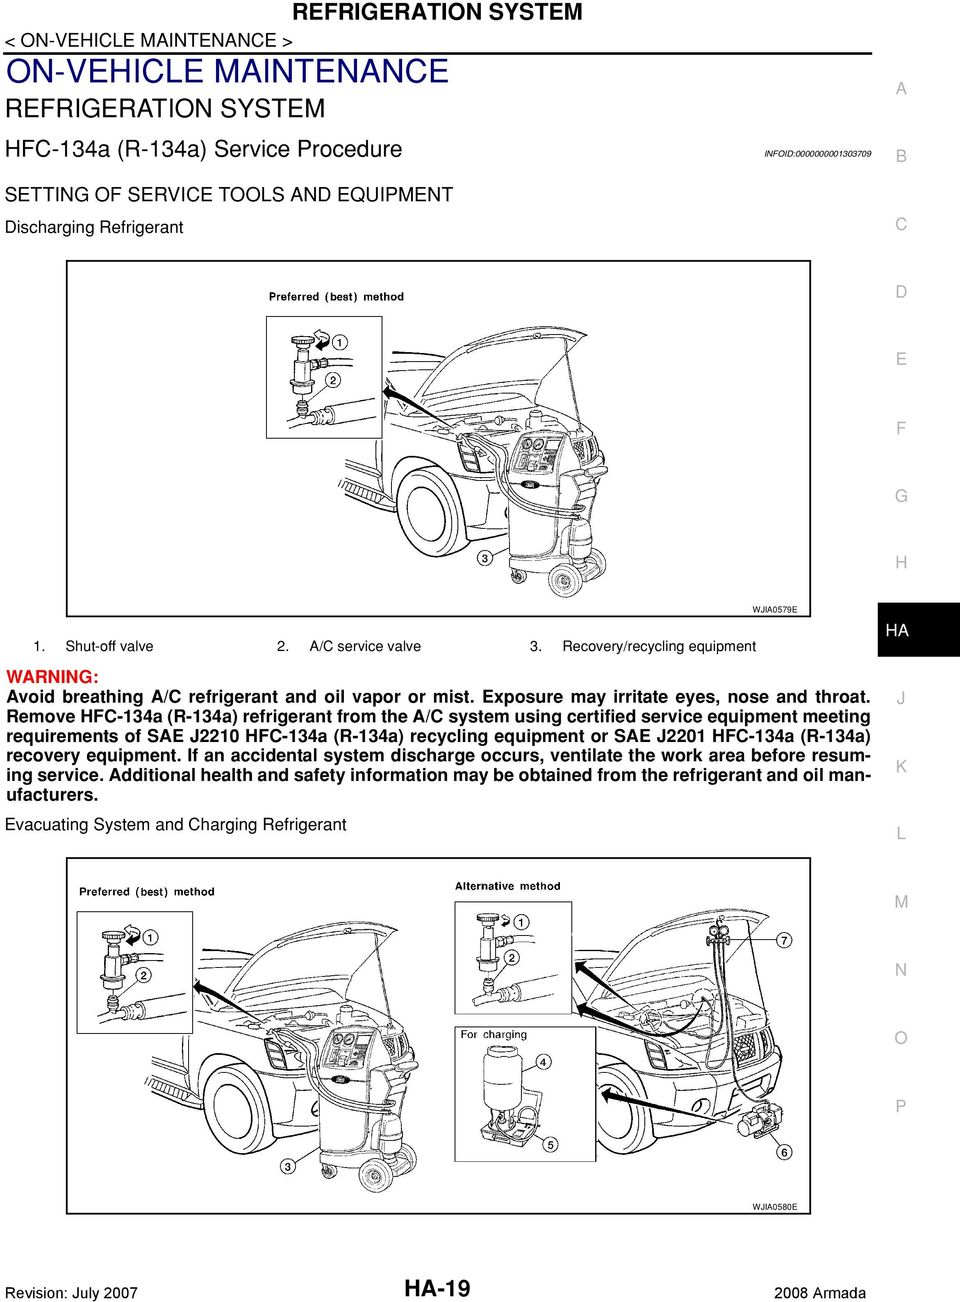 Heater Air Conditioning System Pdf 1995 Mitsubishi Montero Sr 3500 Engine Compartment Fuse Box Diagram Remove 134a R Refrigerant From The Using Certified Service